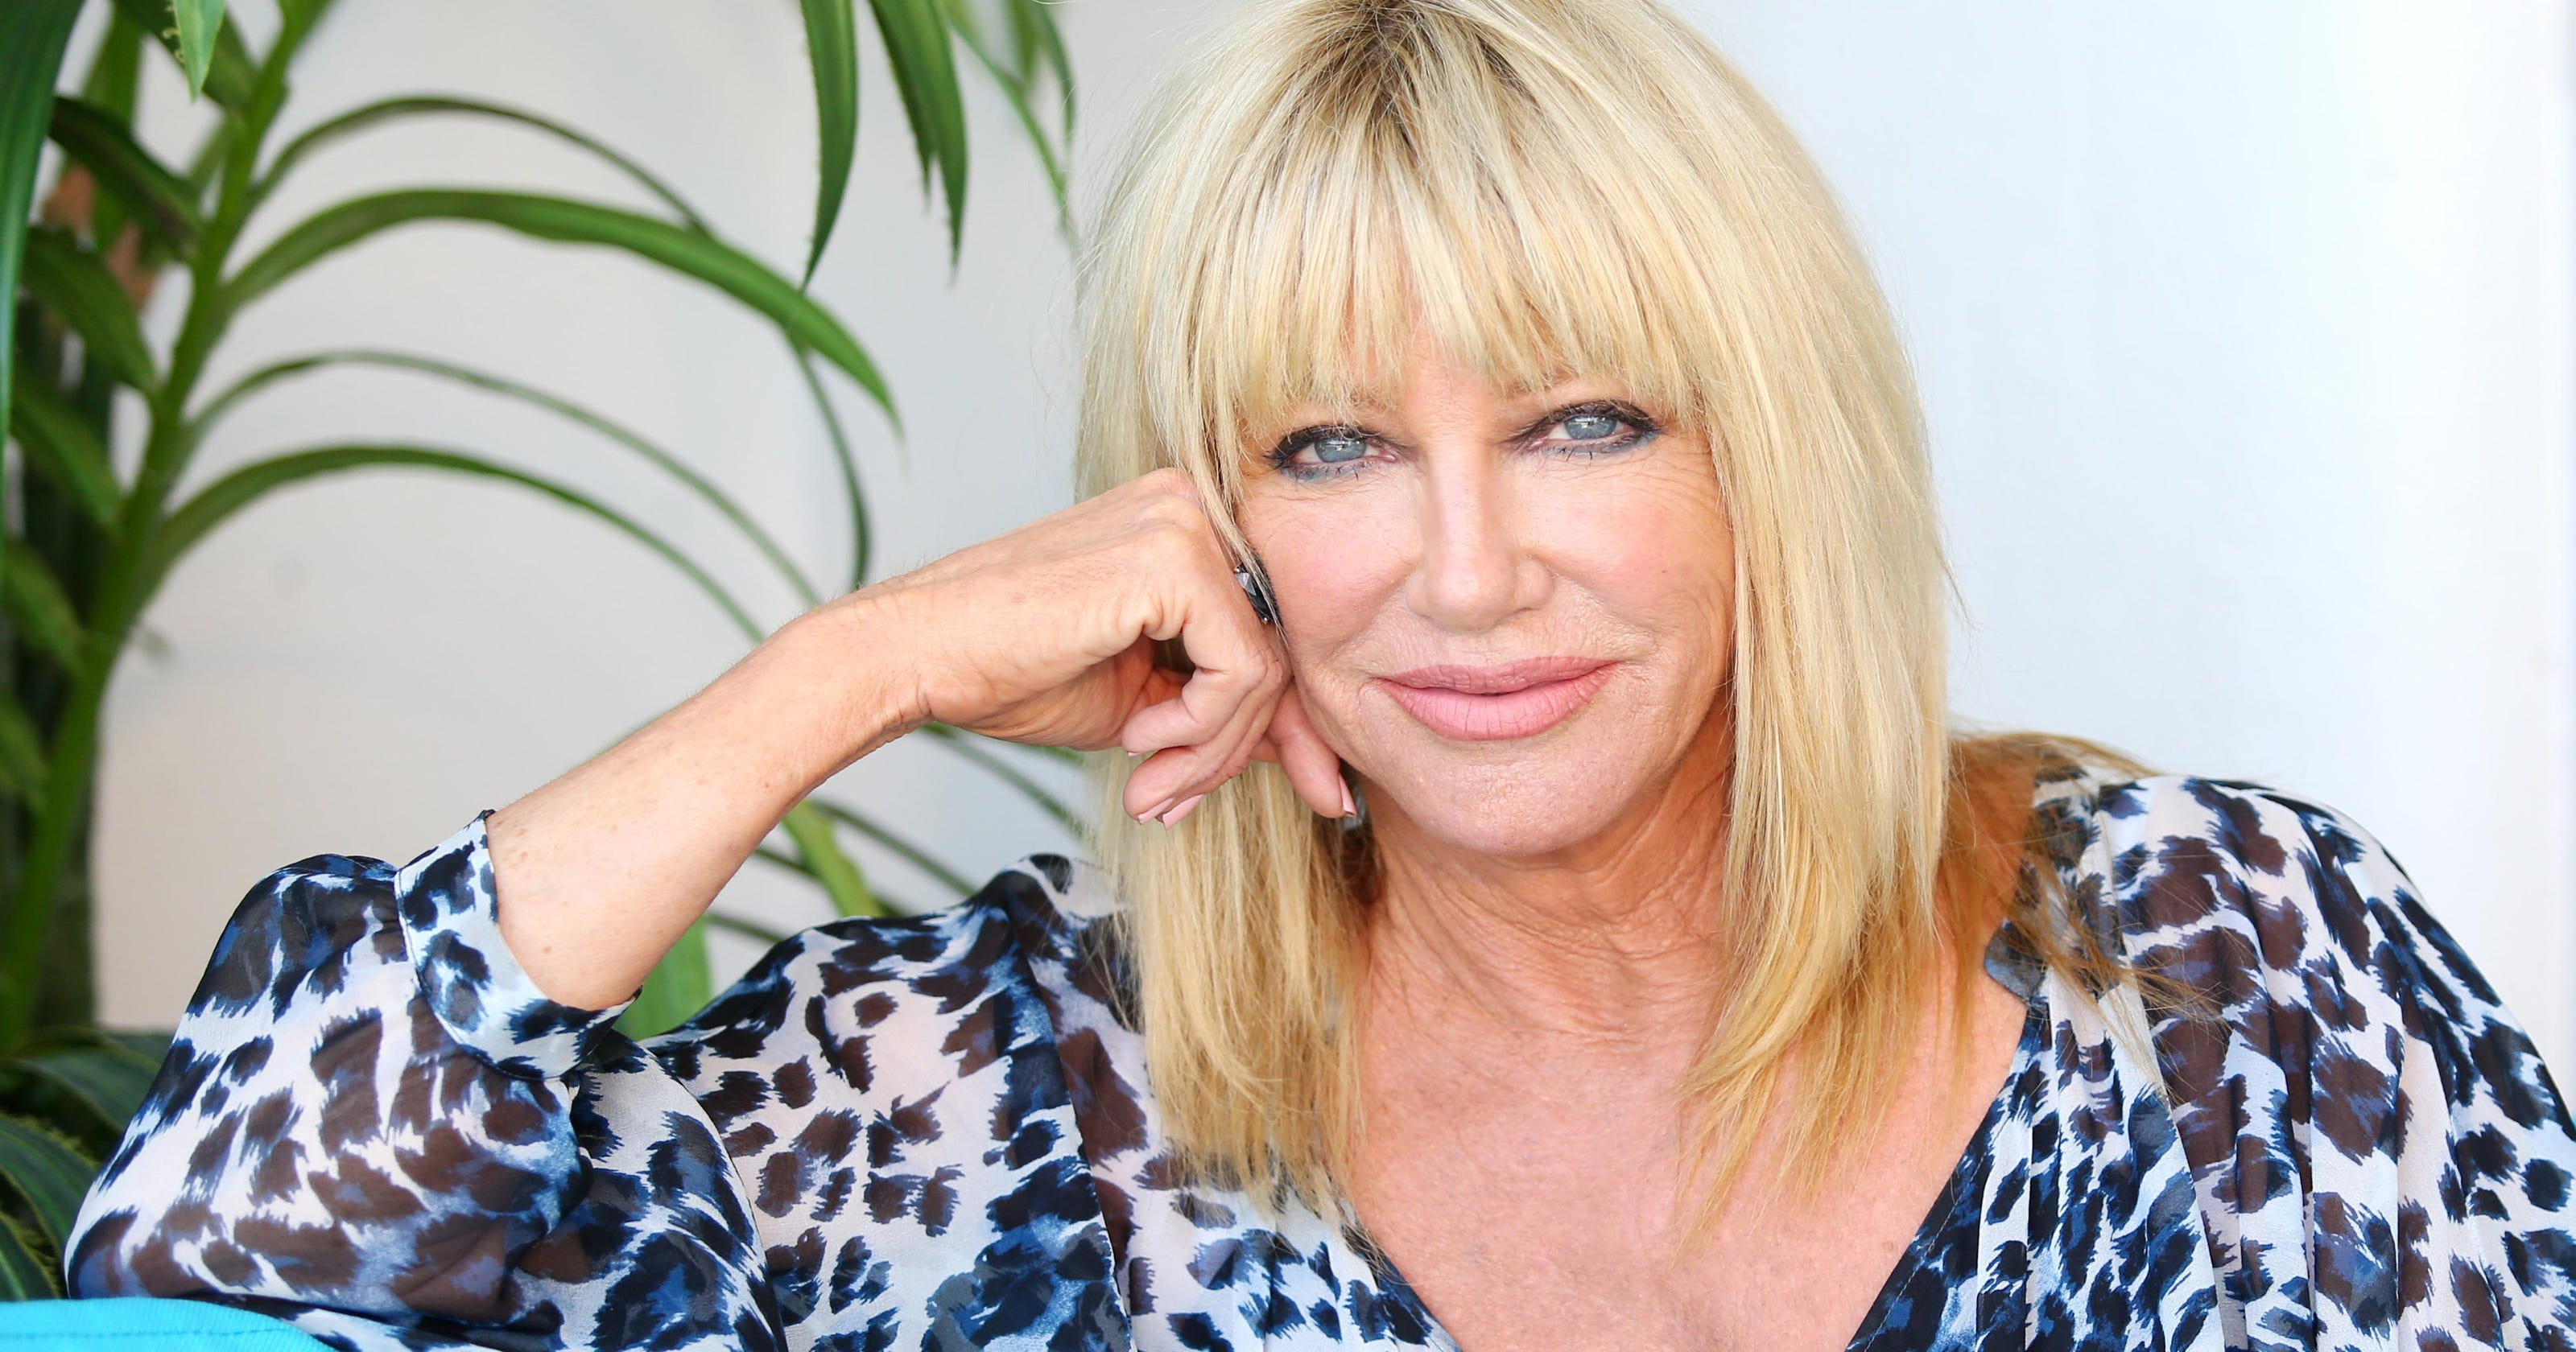 Suzanne somers blow job